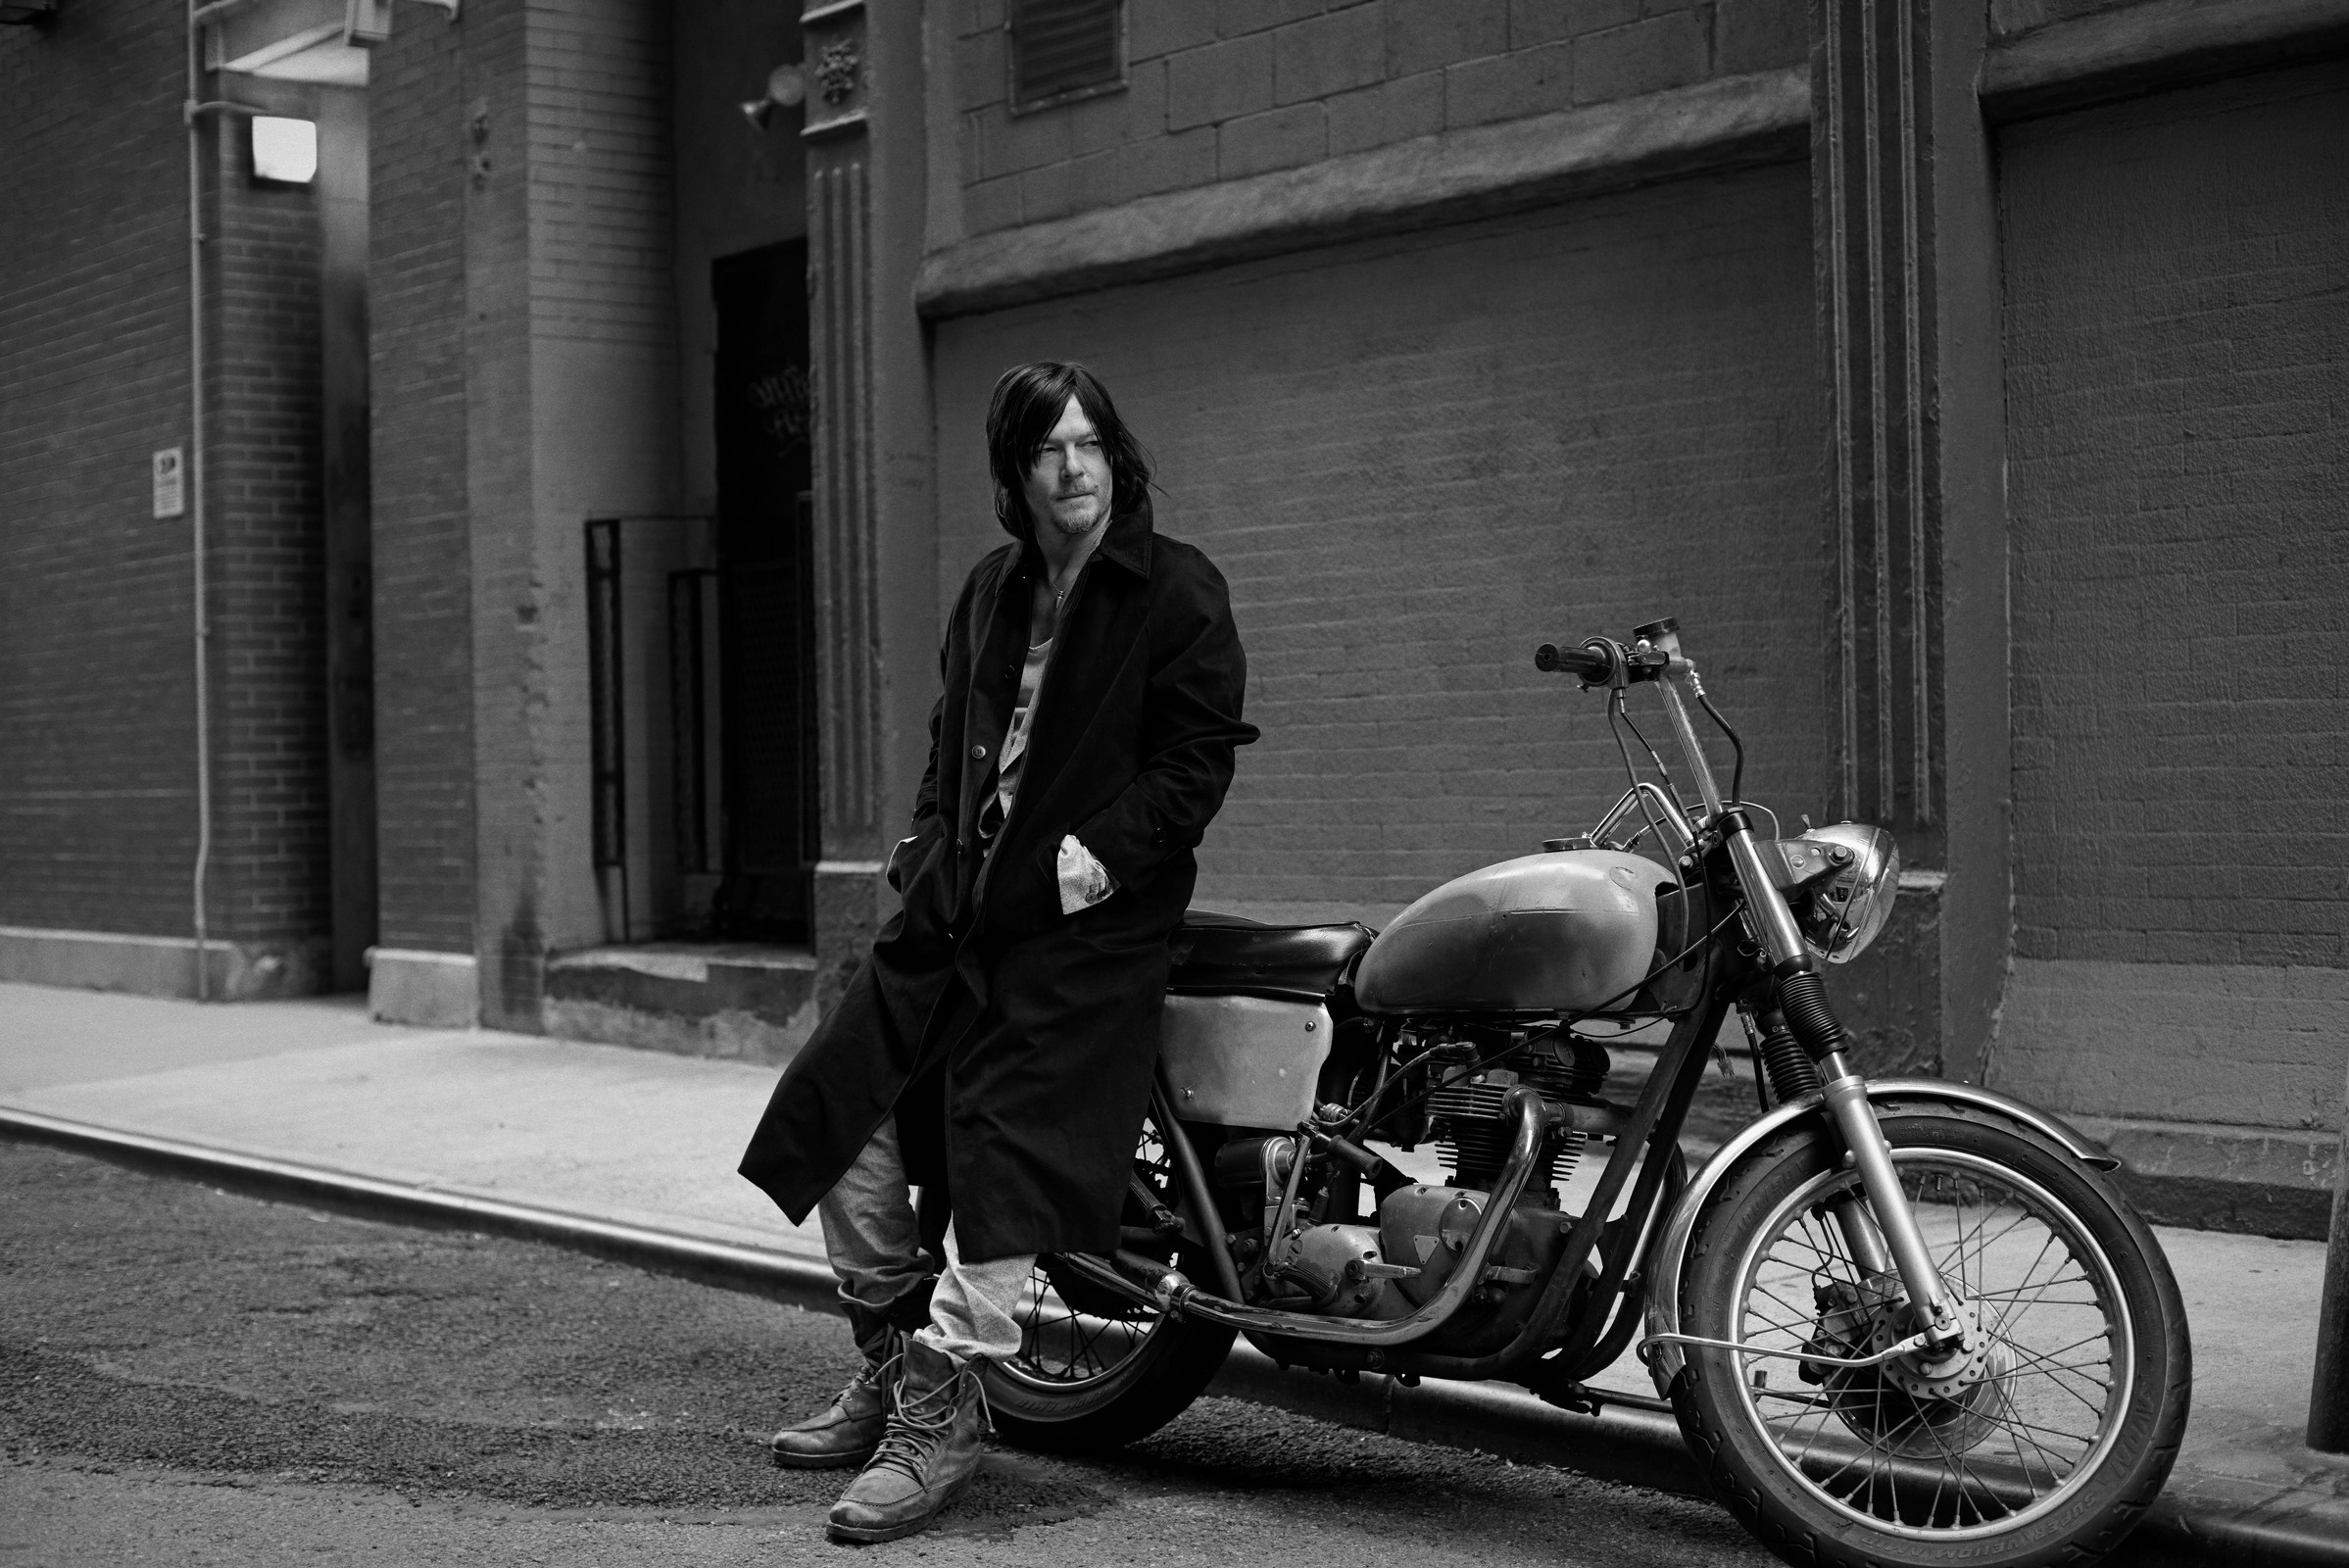 Norman Reedus Full HD Wallpaper And Background Image